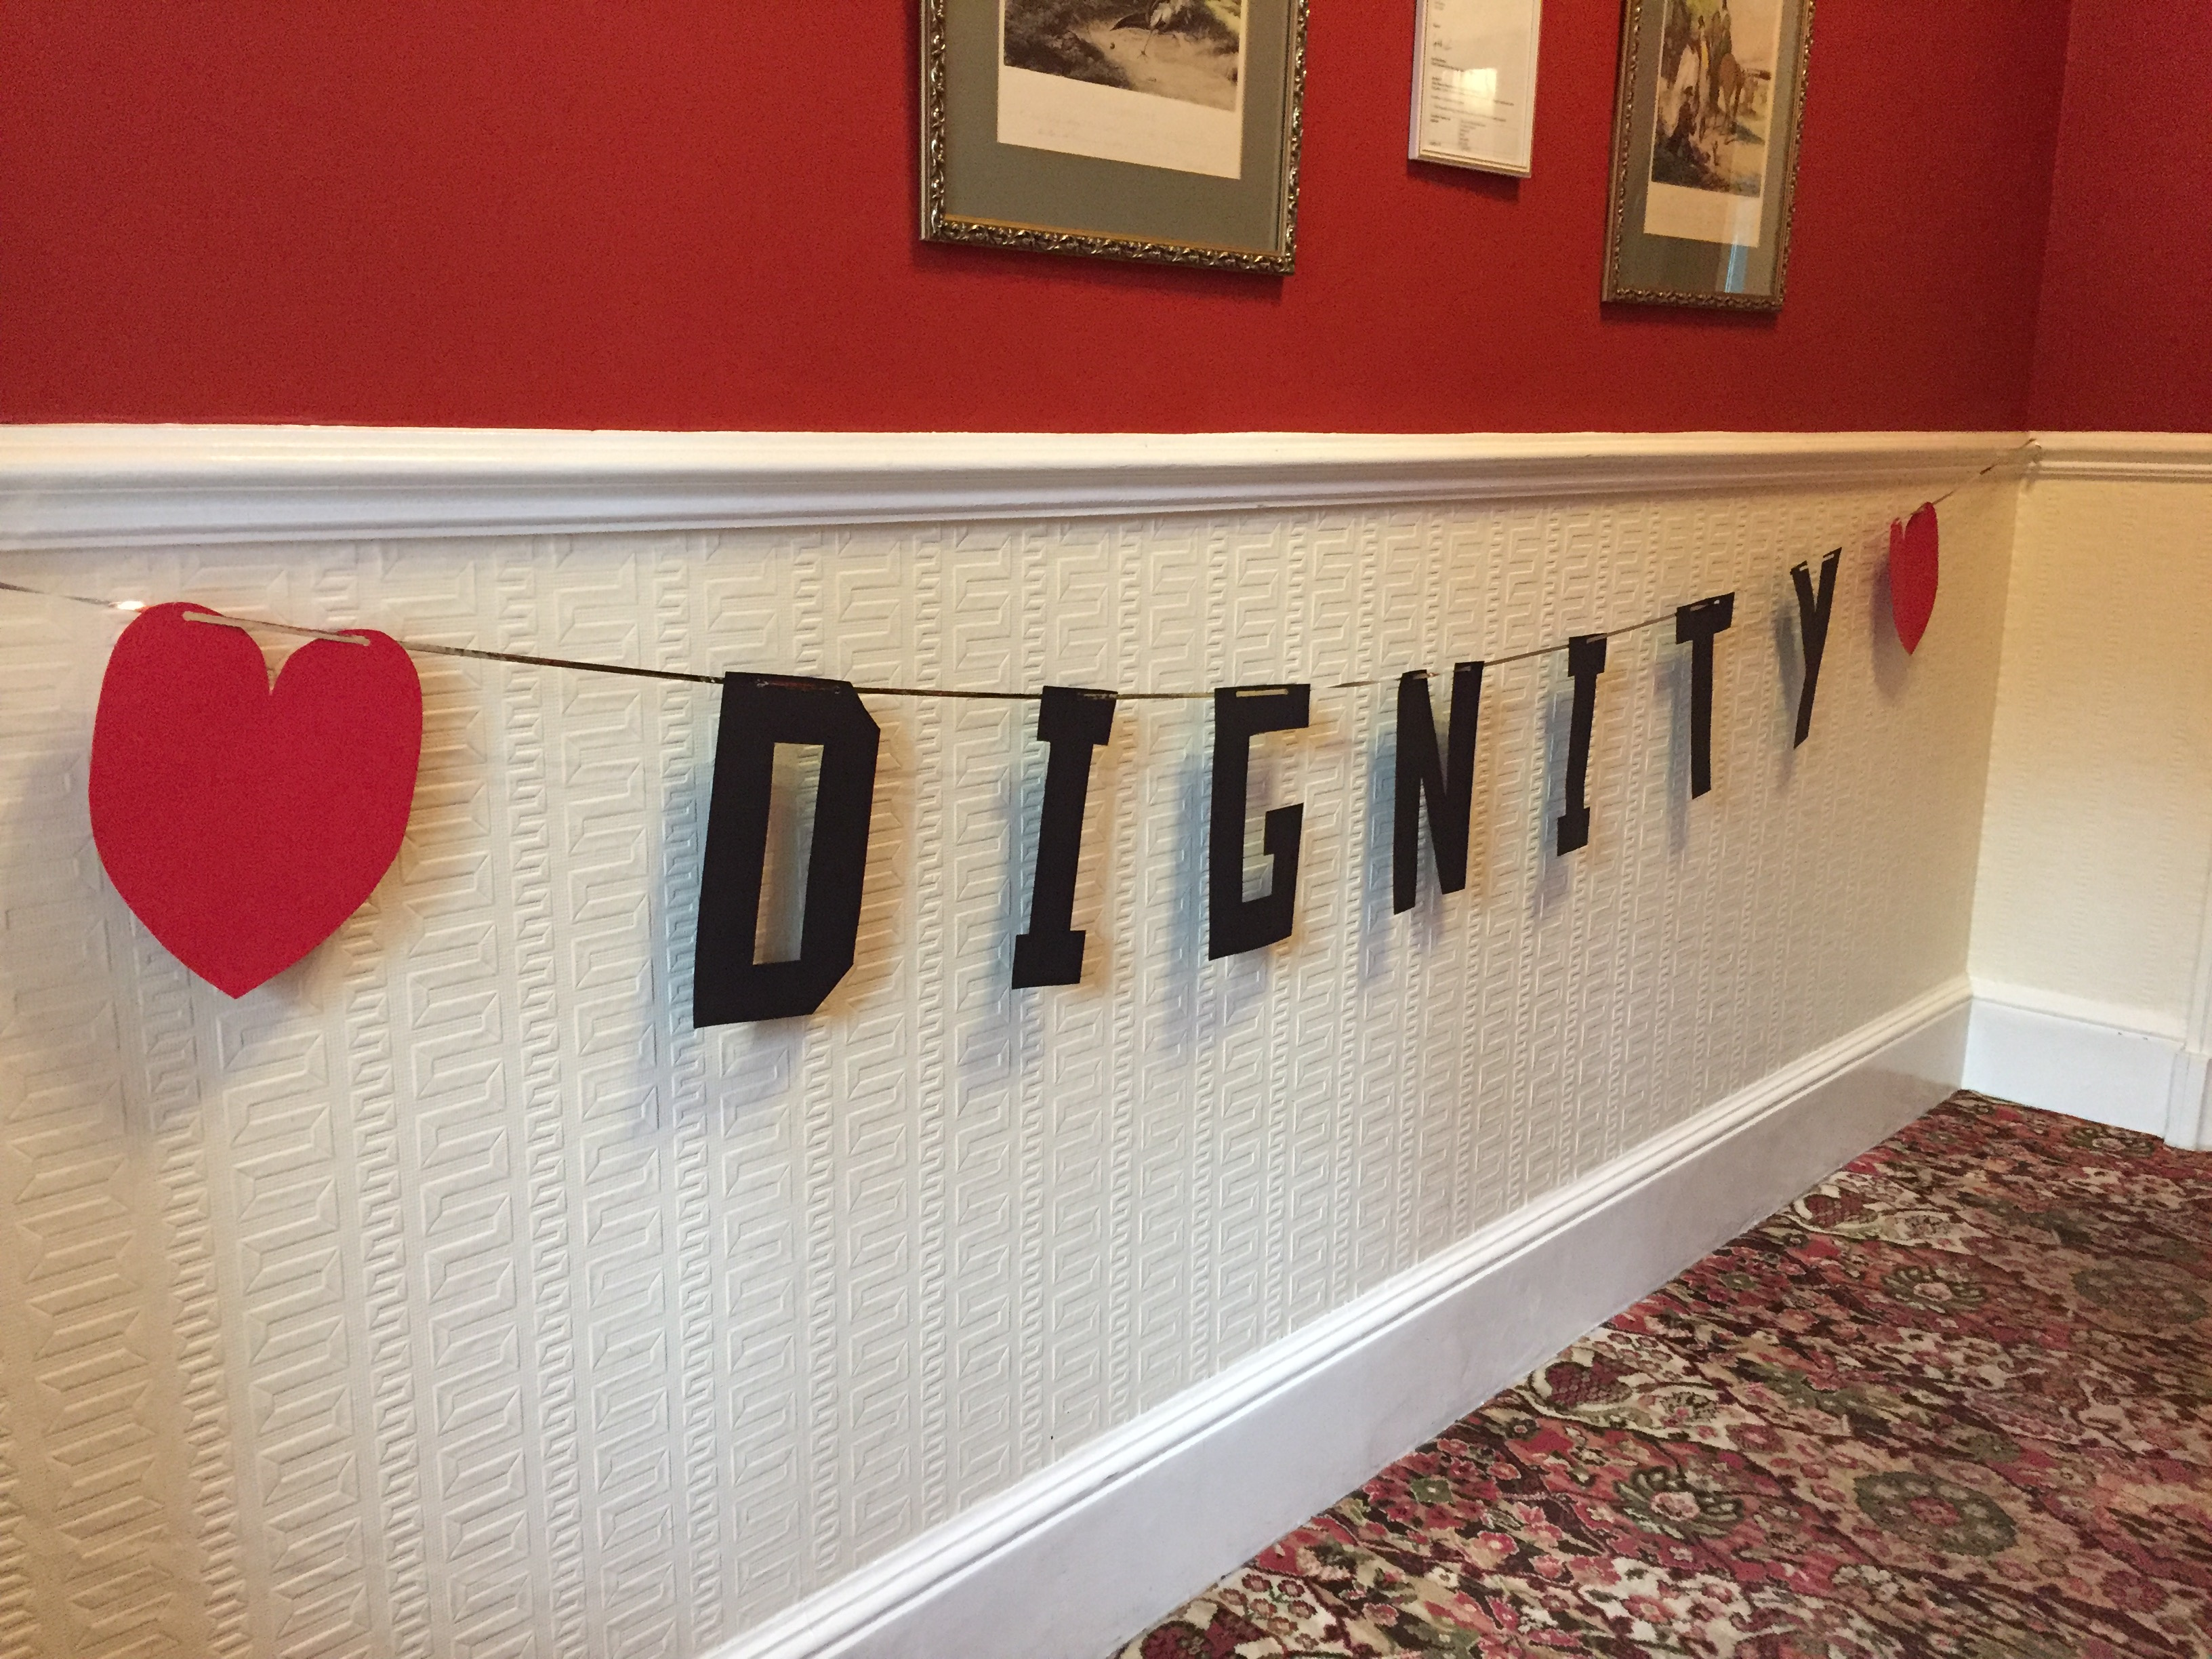 Dignity Day 2019